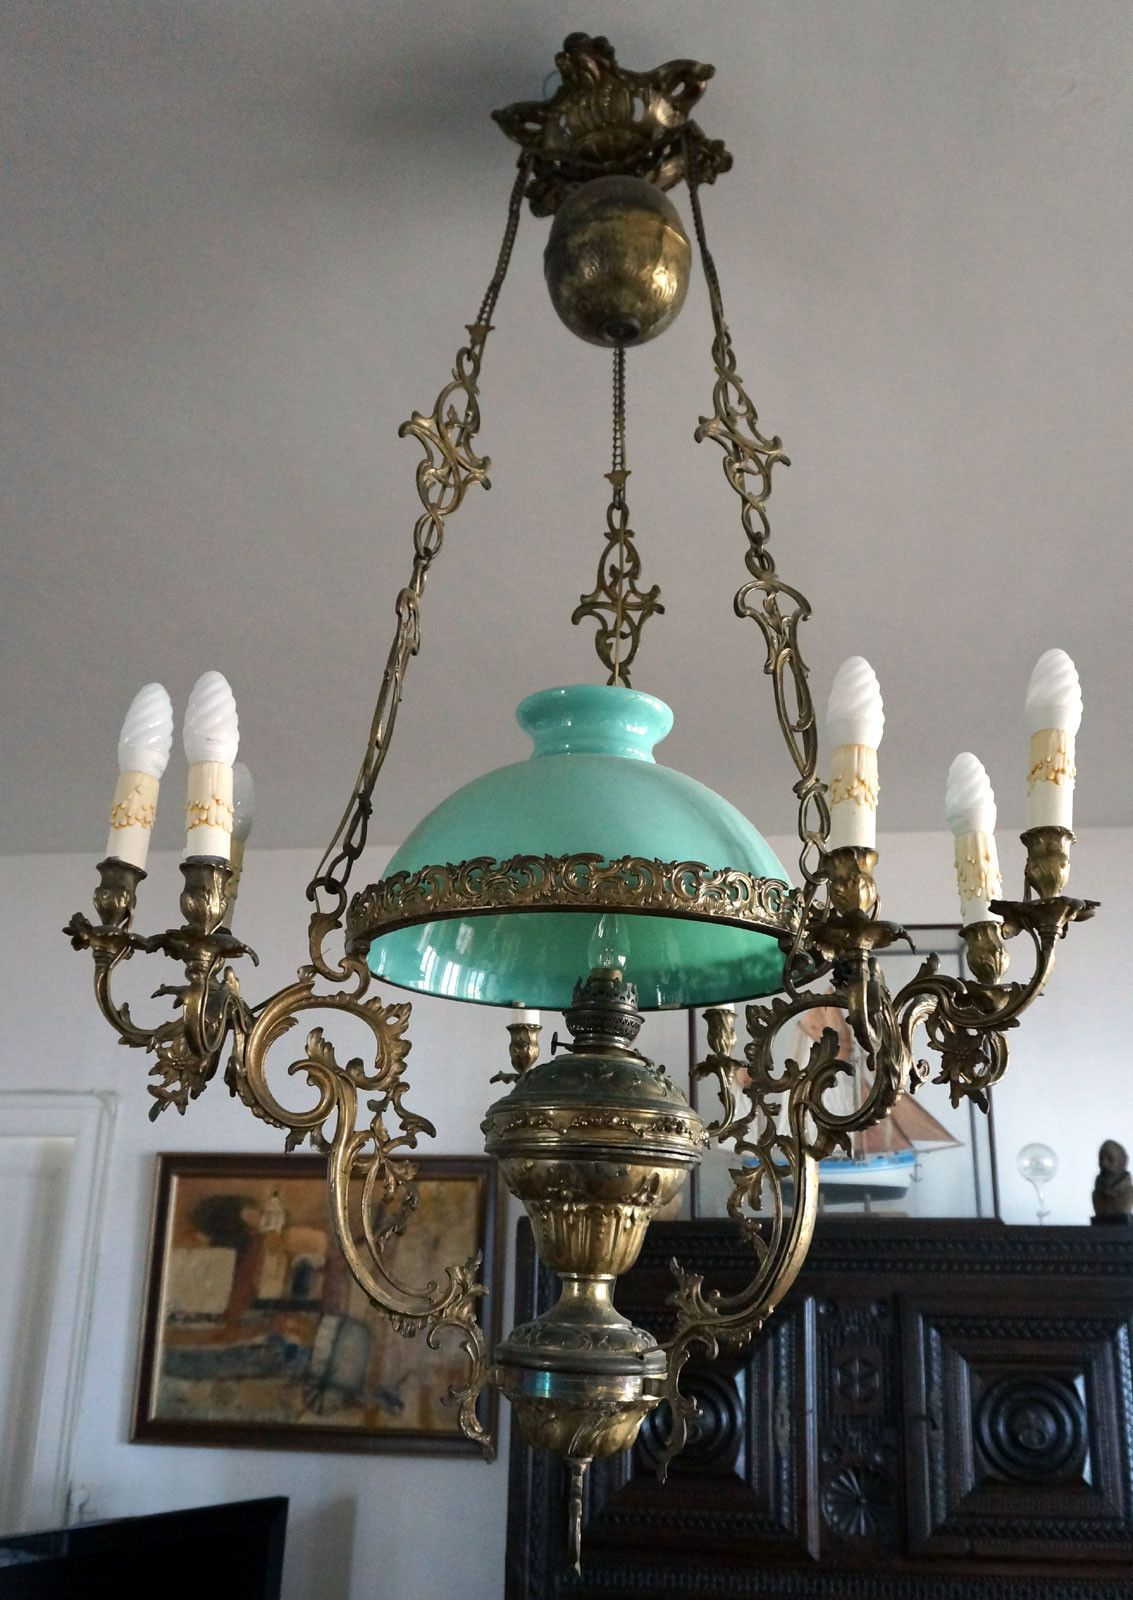 French Victorian Large Hanging Oil Lamp Chandelier 10 Lights Bronze Brass 1860 | eBay